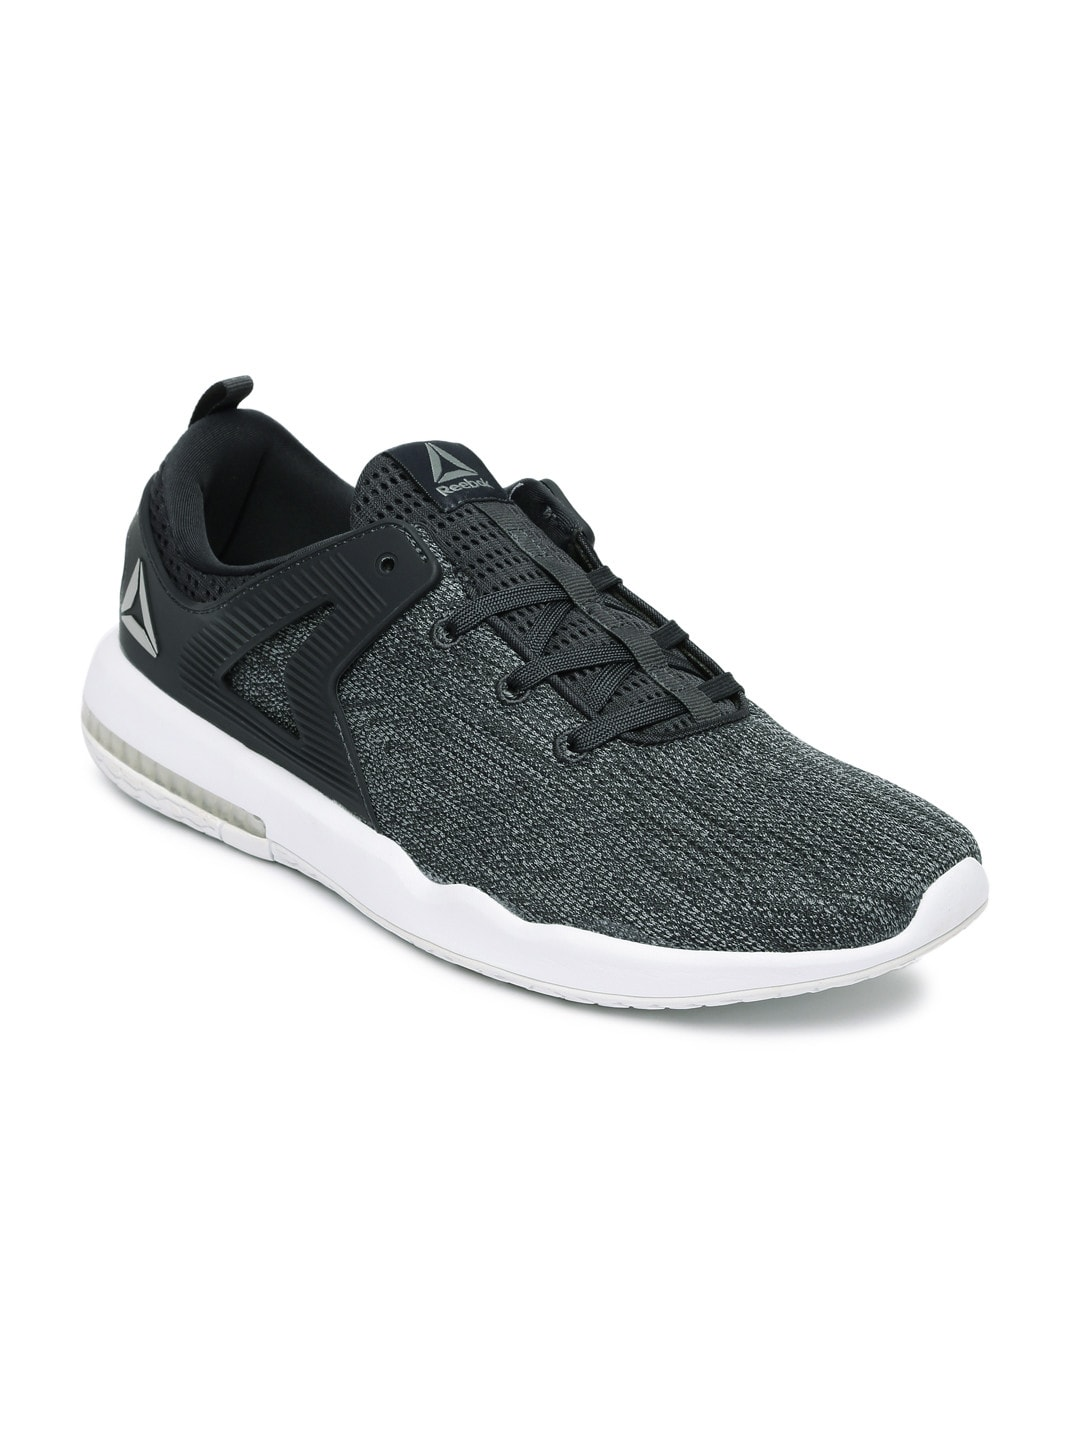 Reebok bd1356 Men Charcoal Grey Hexalite X Glide Running Shoes- Price in  India 7b9a120a0